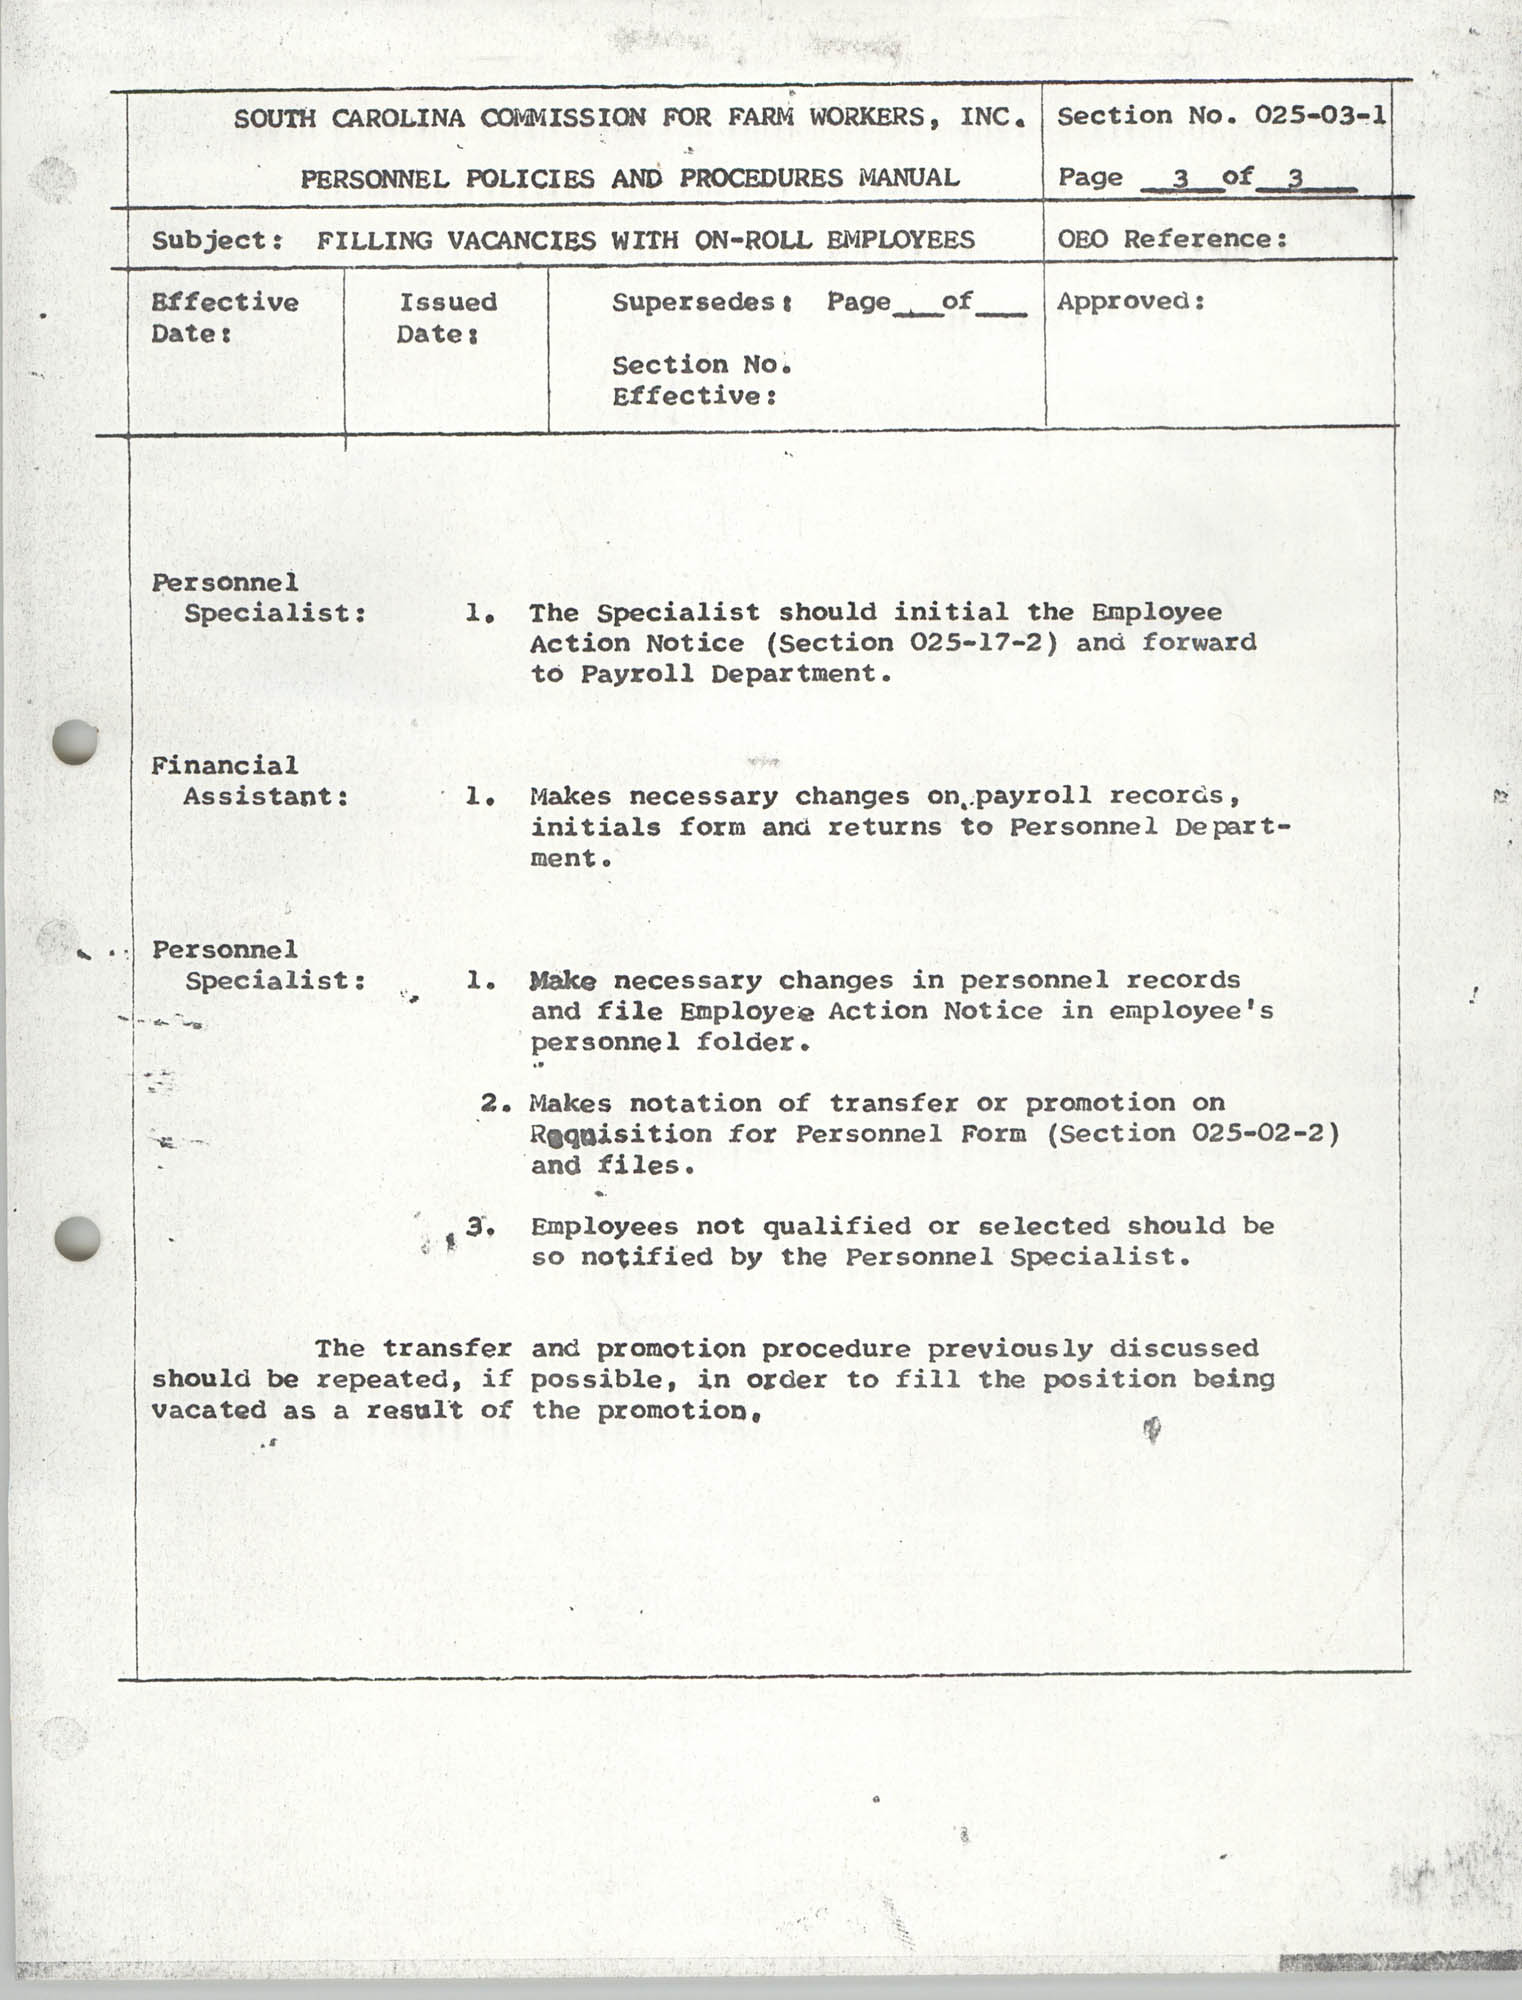 Personnel Policies and Procedures Manual, Section No. 025-03-1, Page 3